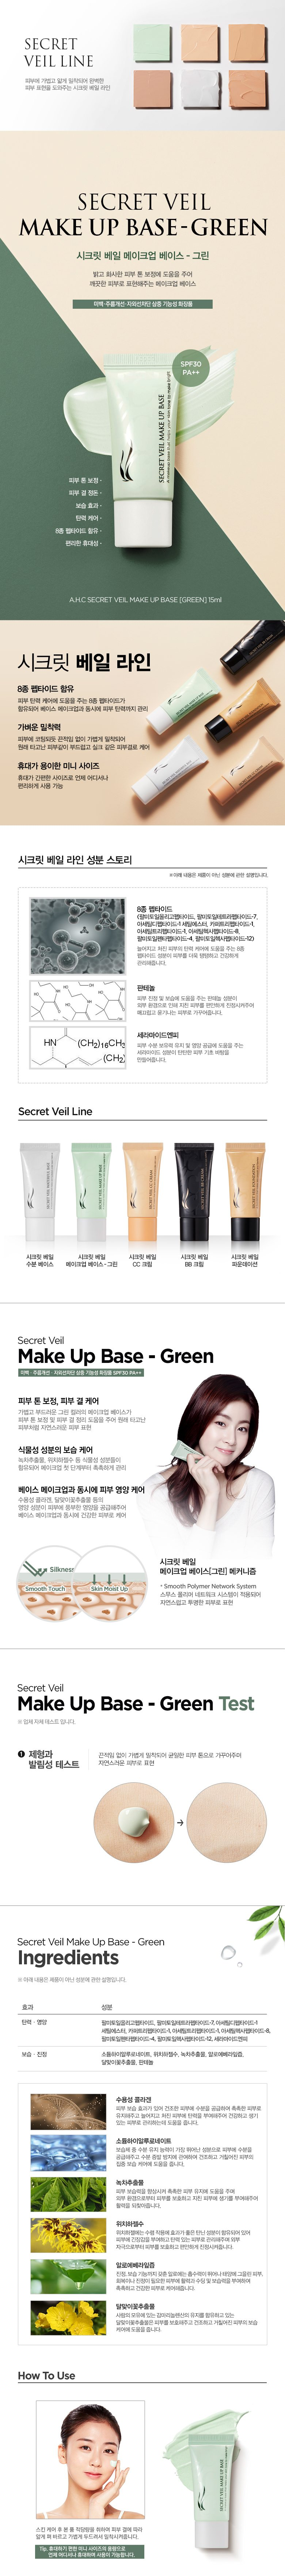 AHC Secret Veil Make Up Base - Green SPF 30 PA+++ 15g malaysia singapore indonesia